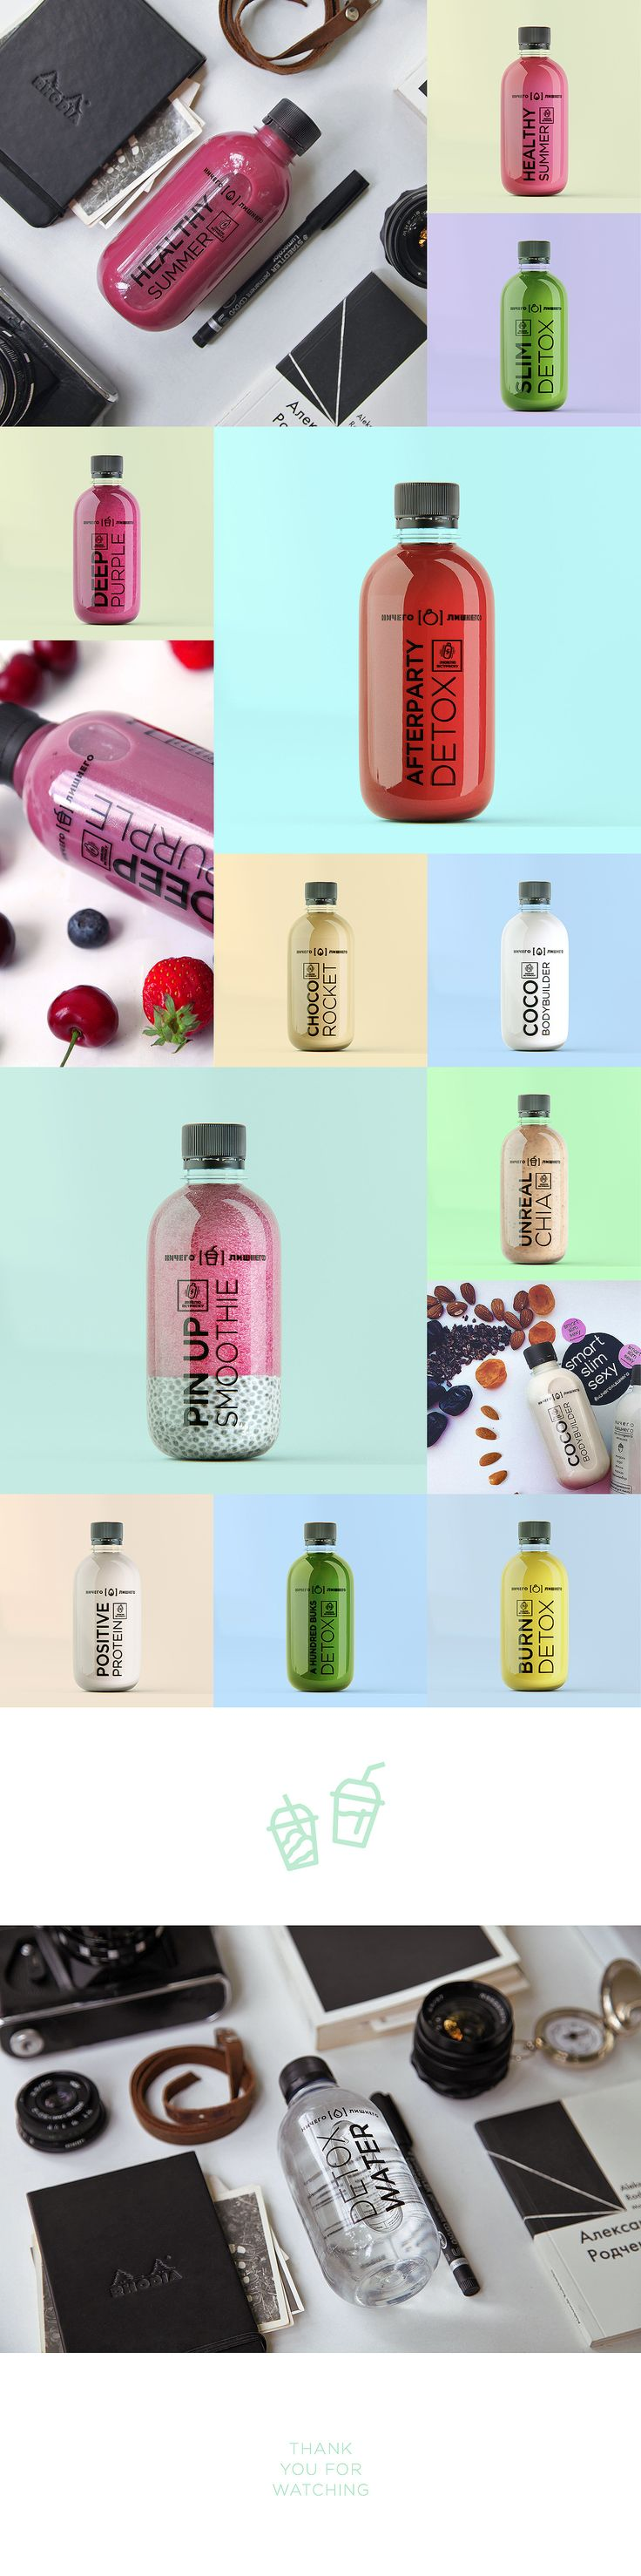 Package design for detox products Nichego Lishnego [ rus. - nothing extra, just essential ].There are different logos for categories: cold pressed juices, almond milk, fruit smoothie and detox water. Еach product has it special name to help customers ma…